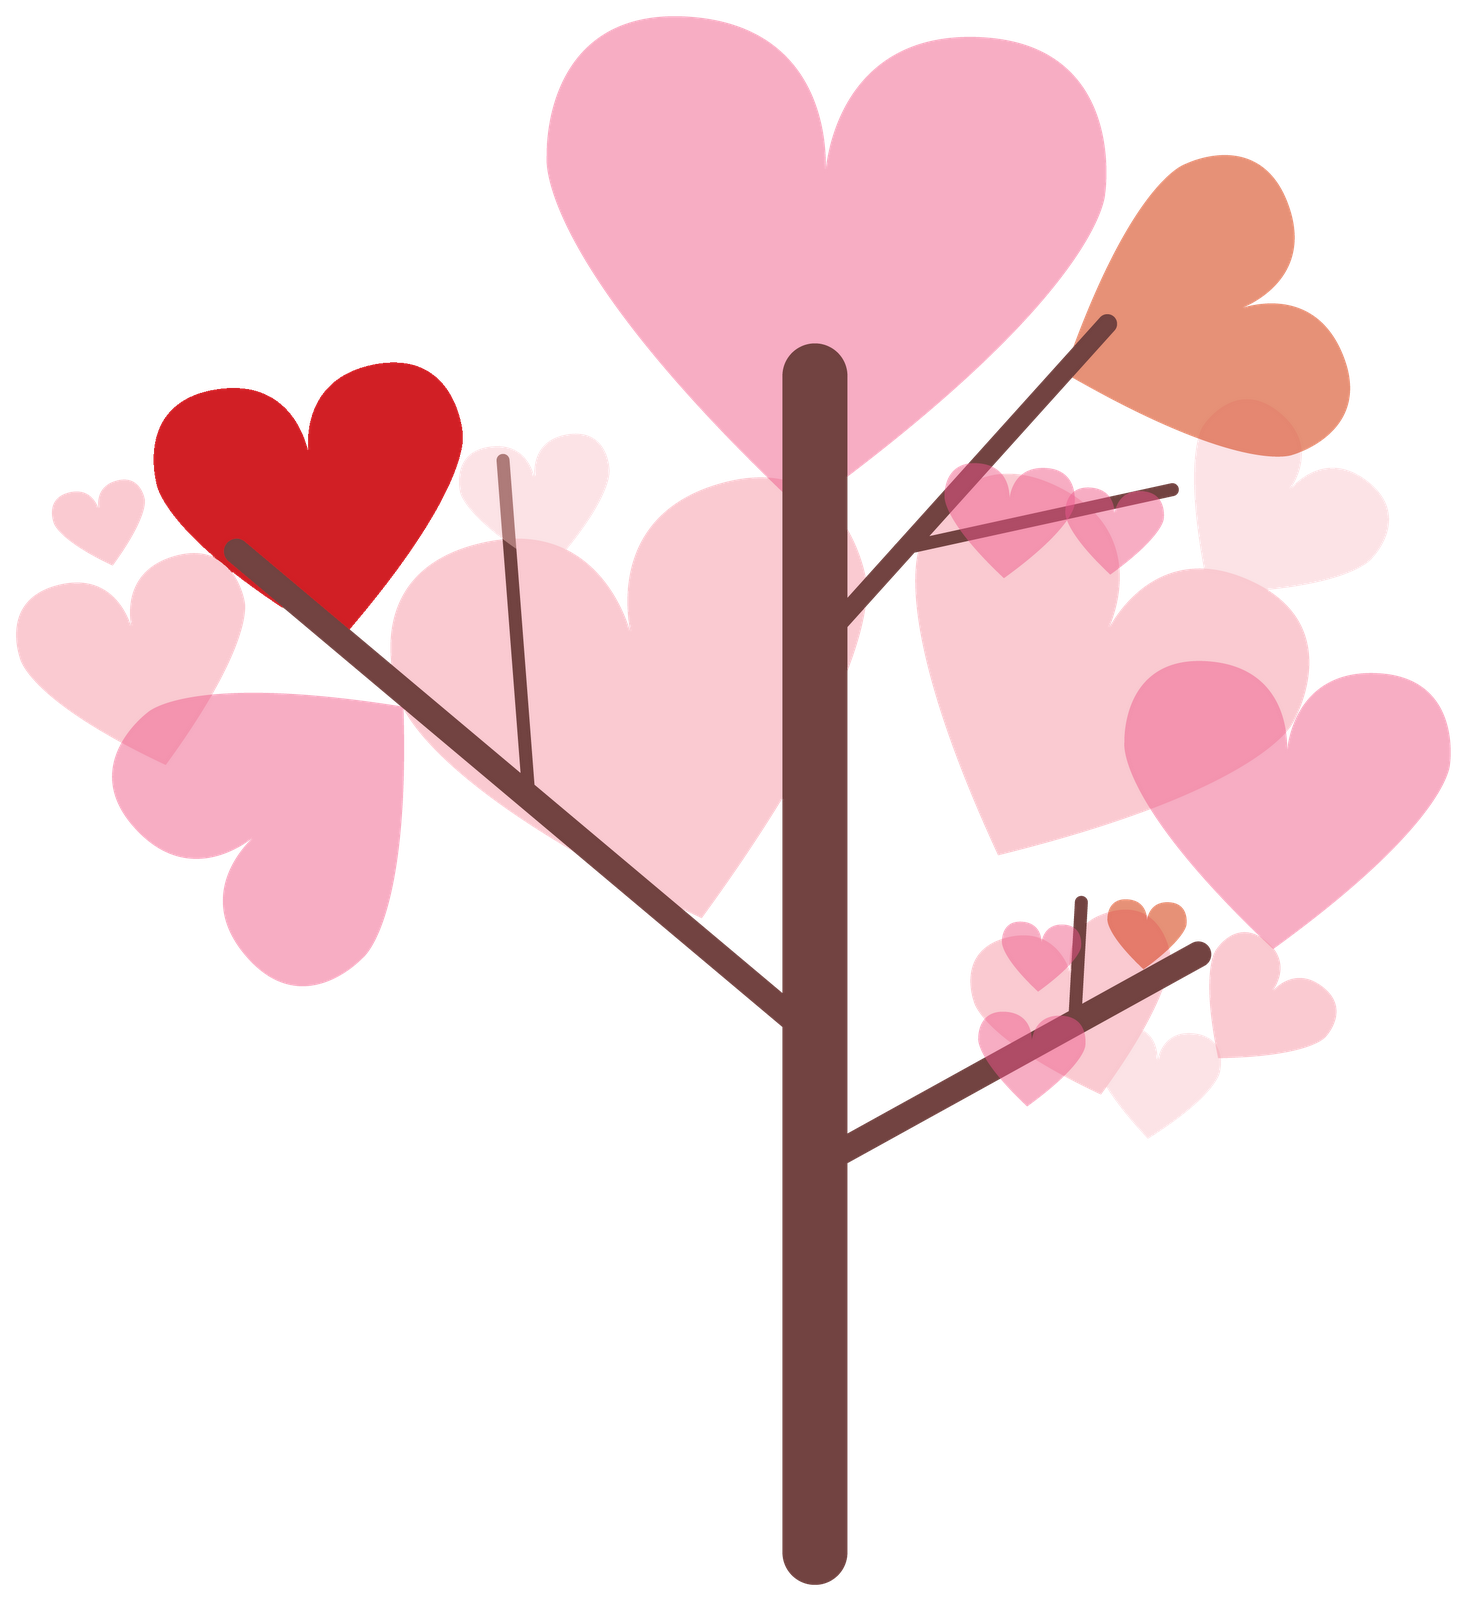 Free Love Cliparts, Download Free Clip Art, Free Clip Art on